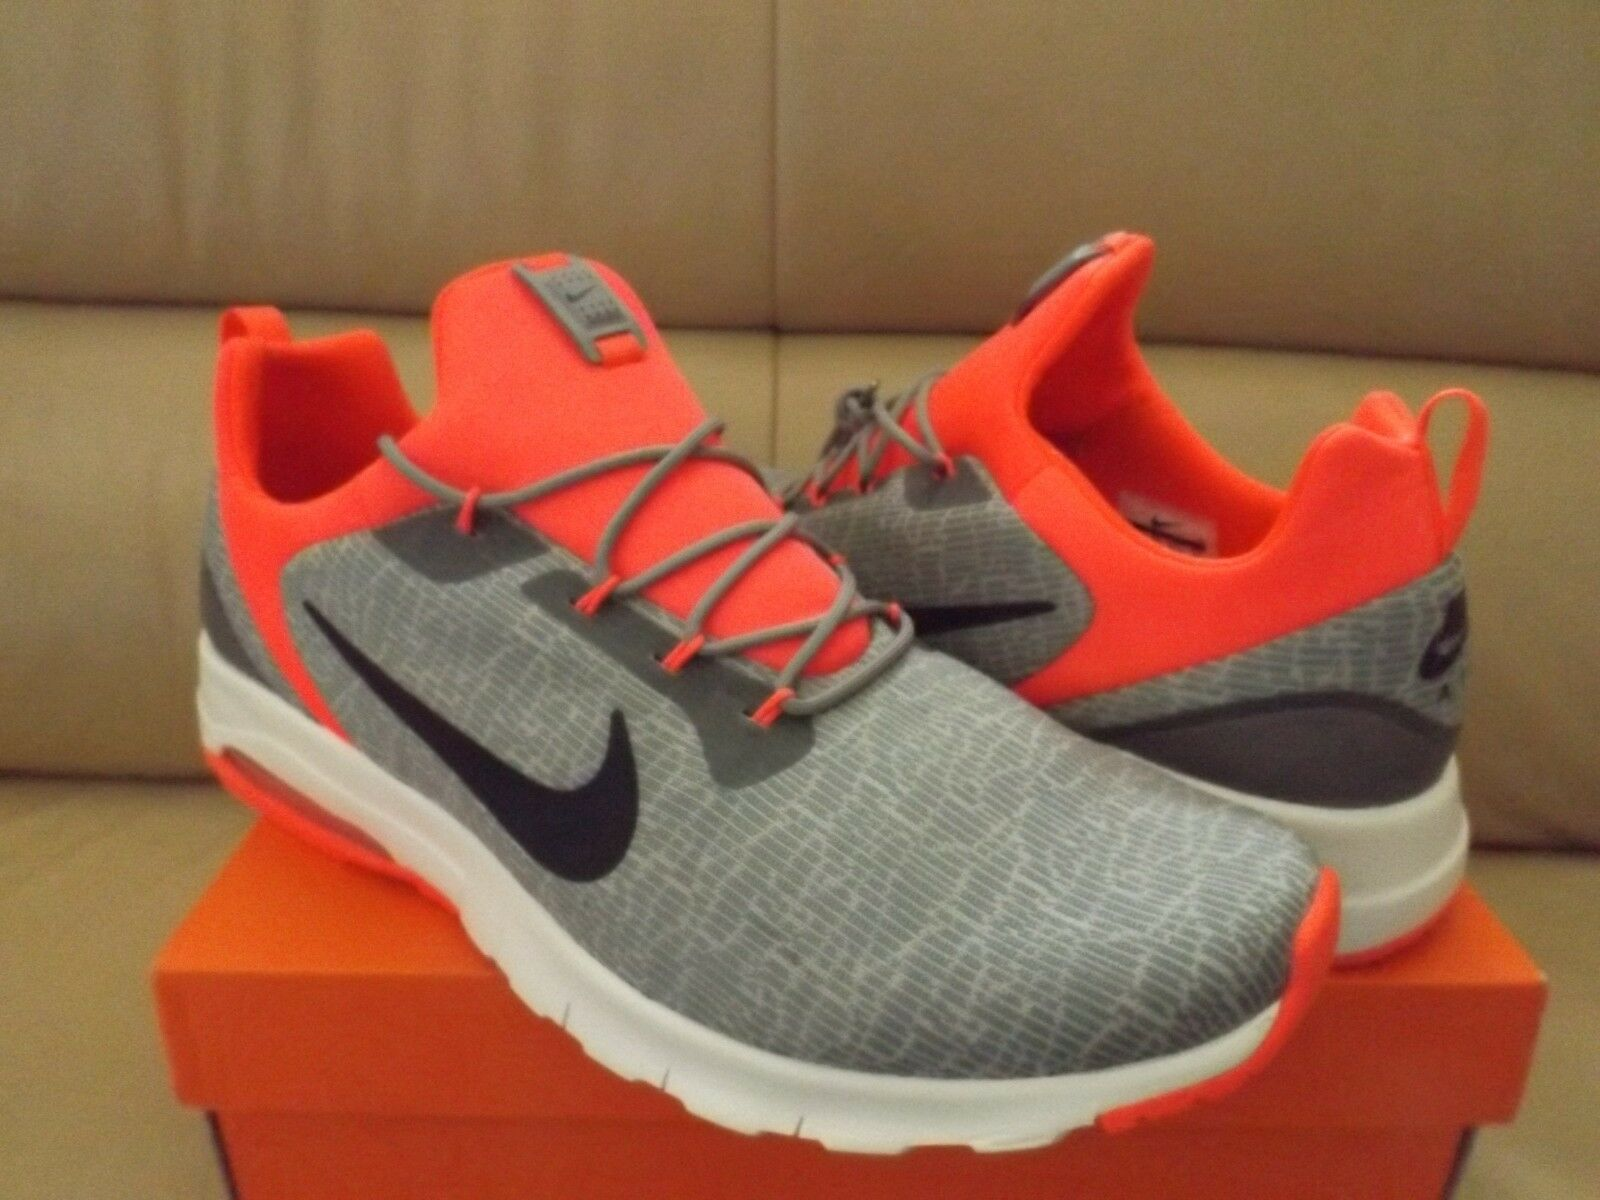 Nike Air Max Motion Racer Men's Running Shoes Gray Solar Red 916771 003 (NEW)